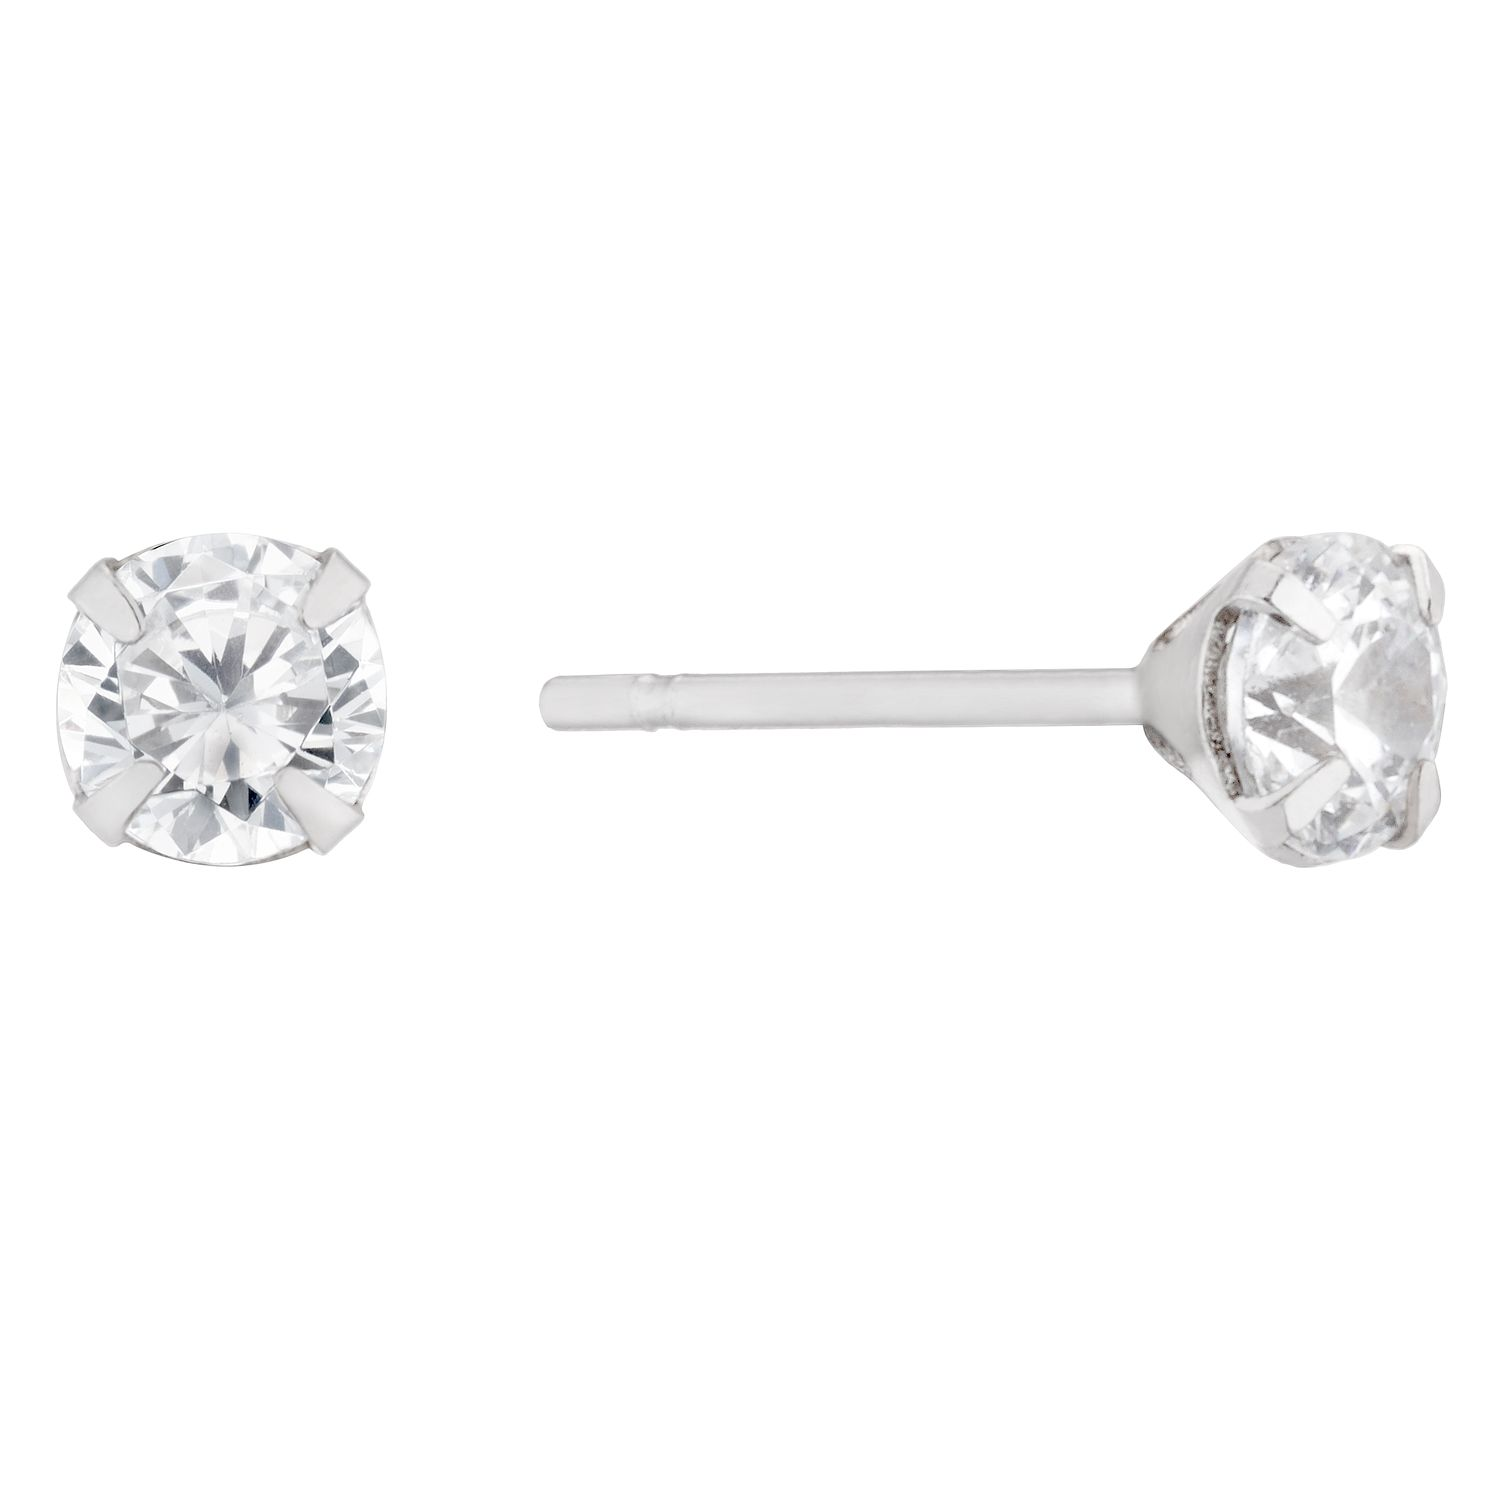 9ct White Gold Cubic Zirconia Stud Earrings - Product number 5736692